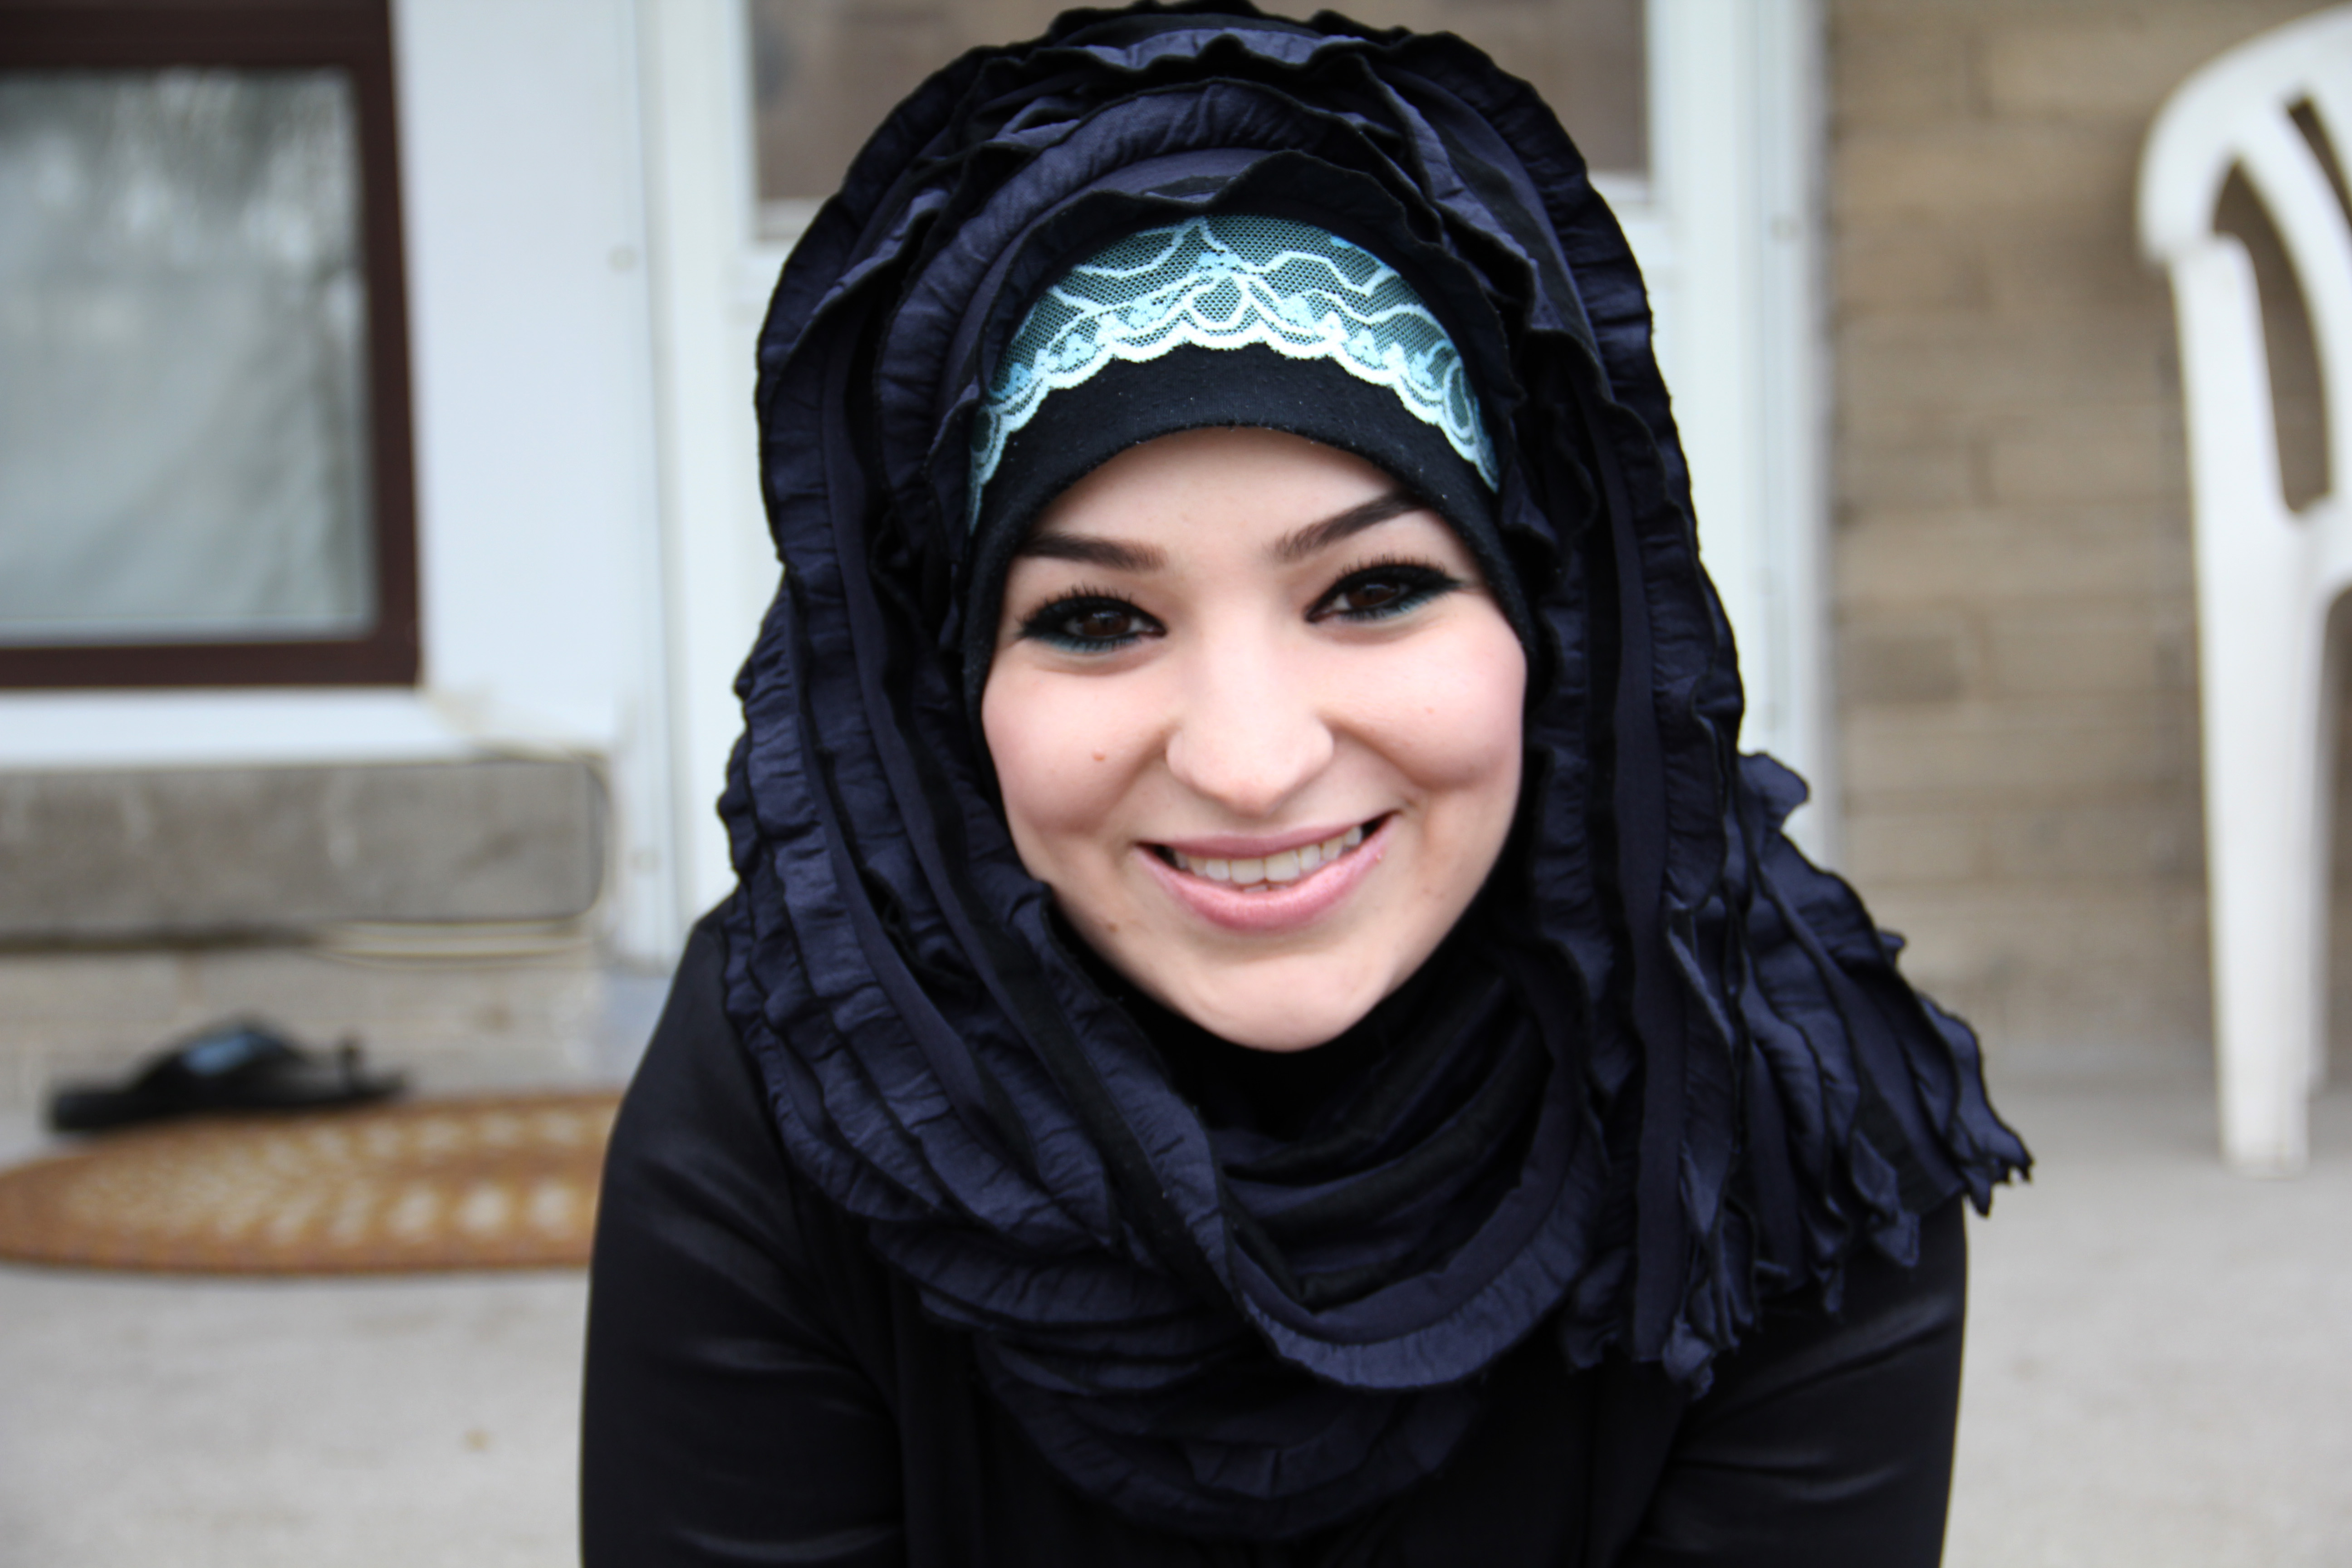 Unveiled: (Mis)understanding the Hijab - The Islamic Monthly